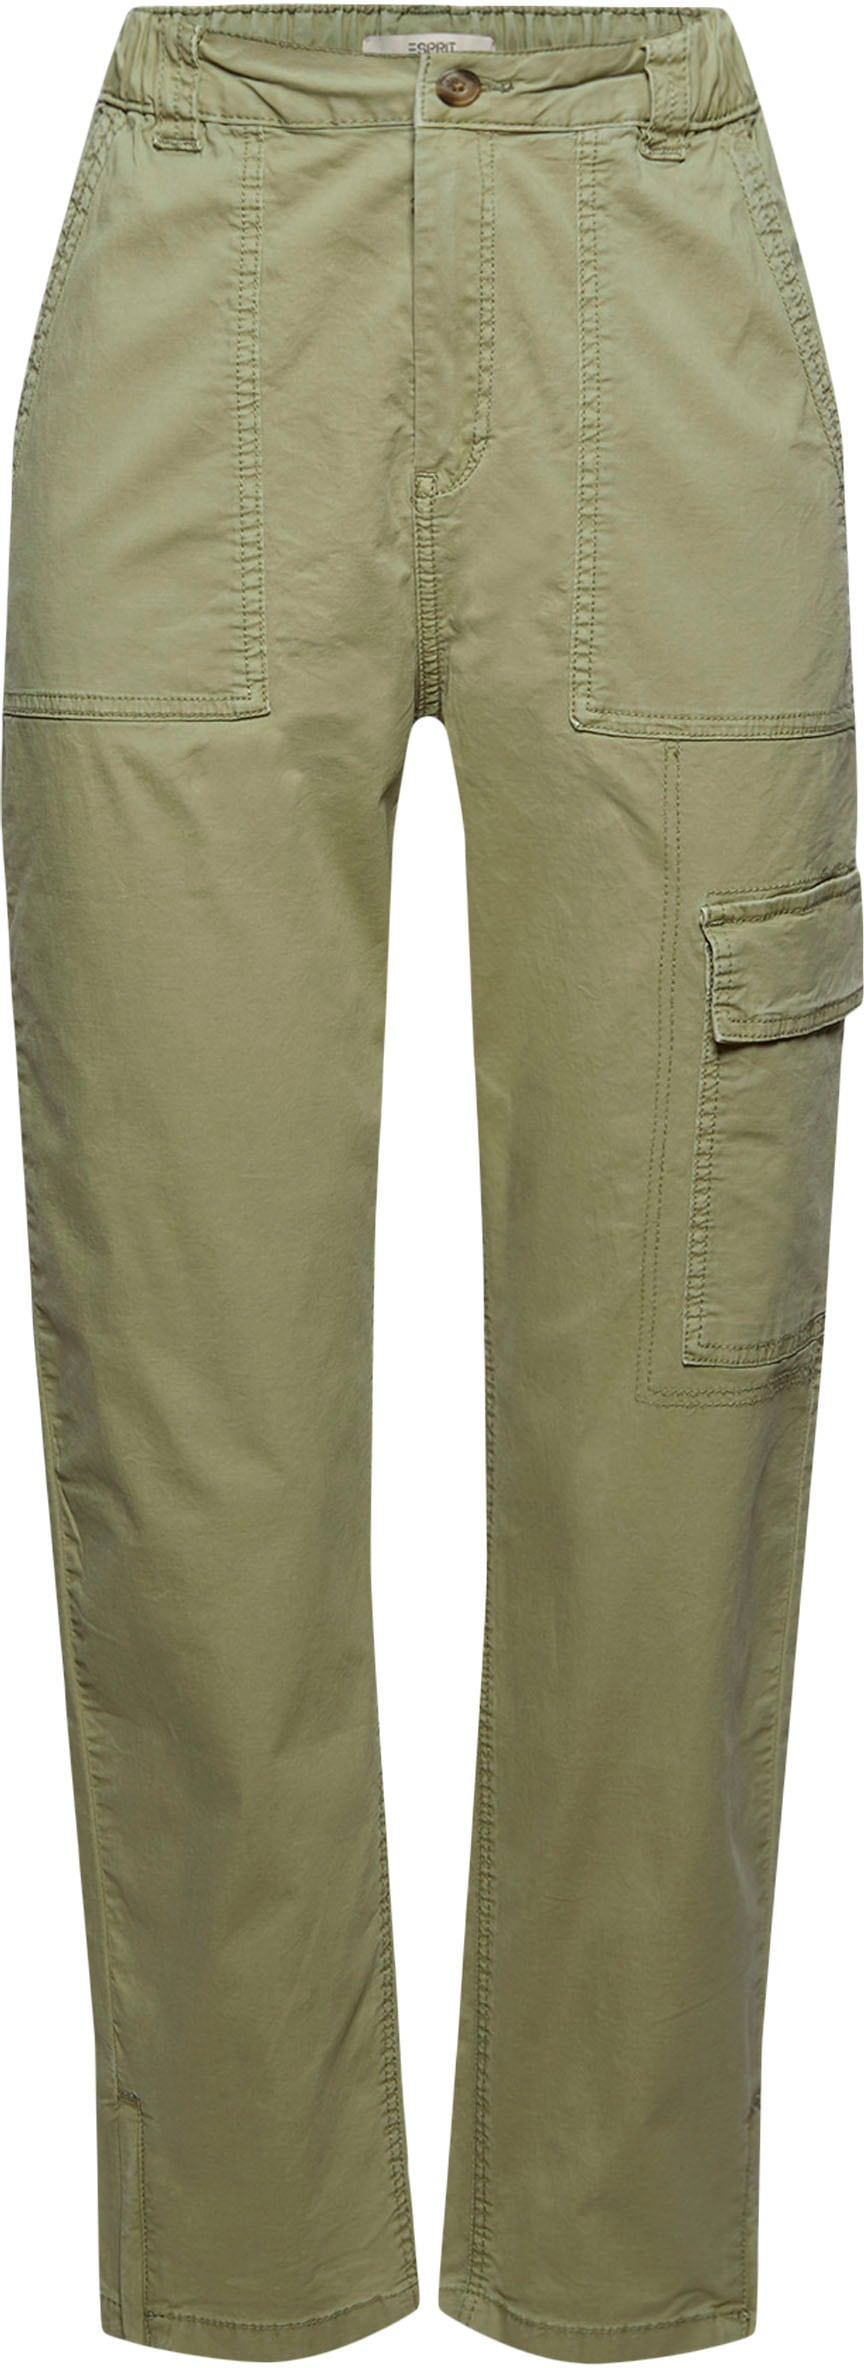 esprit -  Cargohose, im washed-out-Look